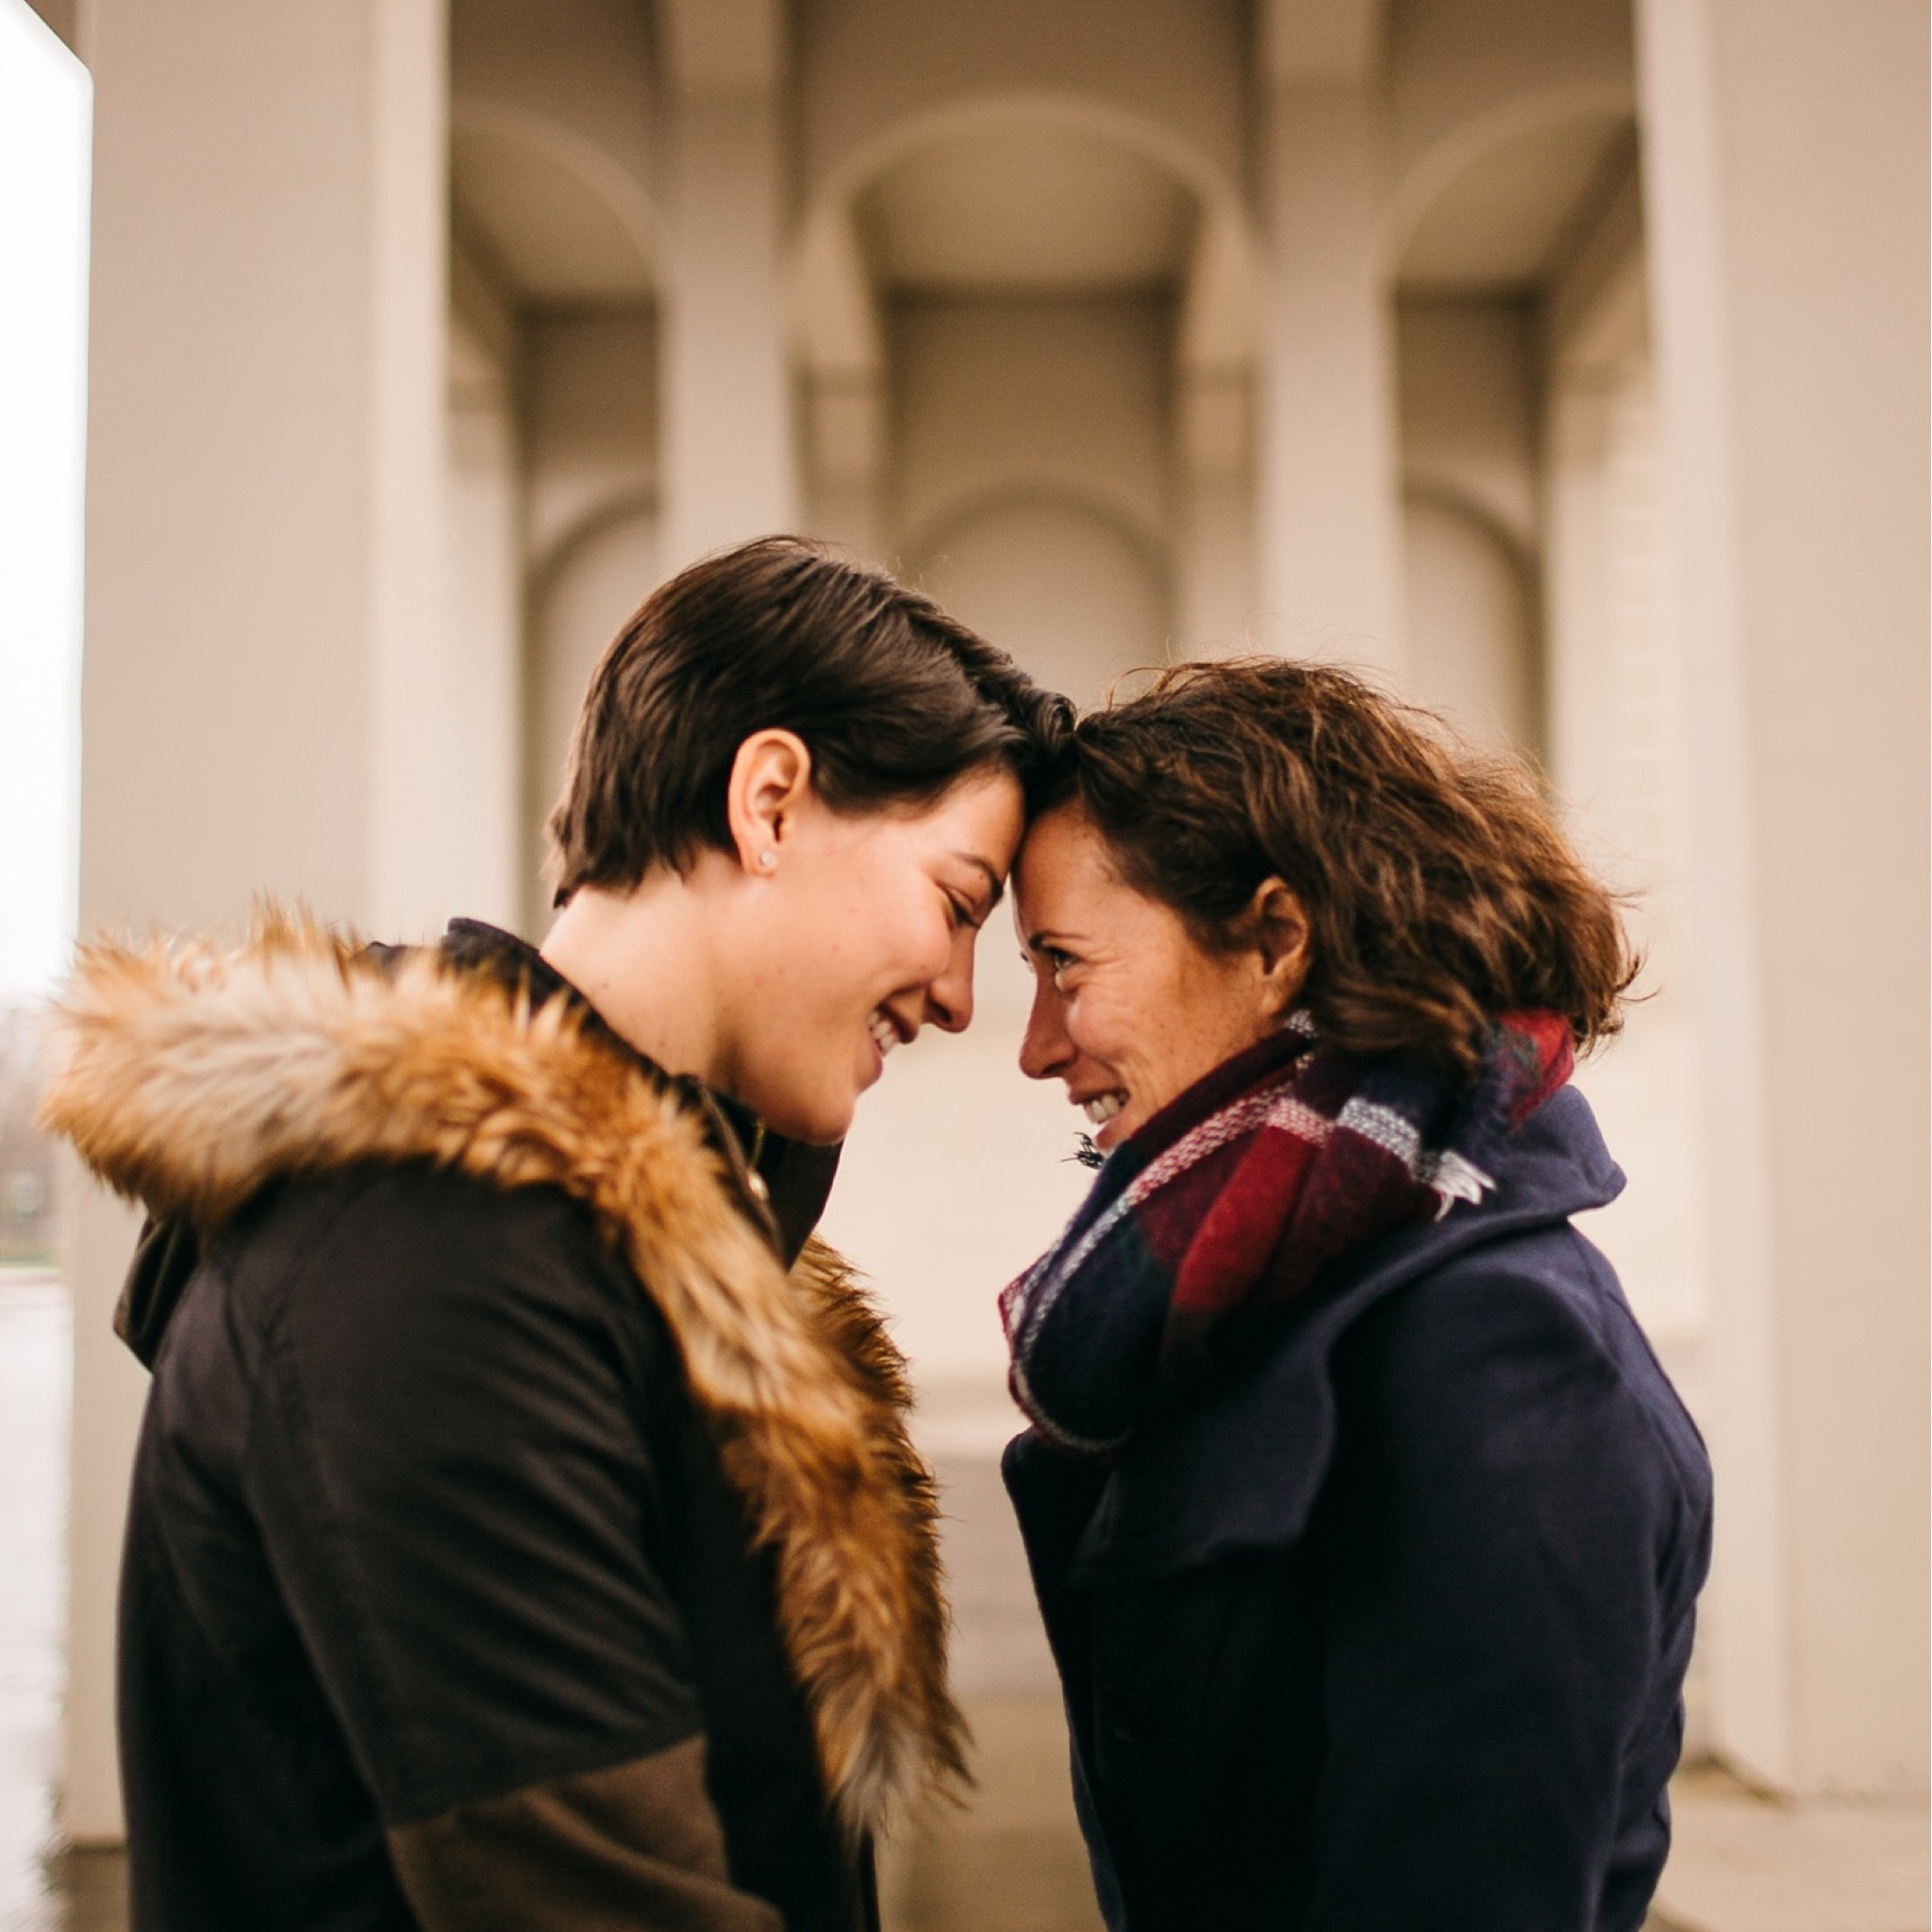 A lesbian couple touches foreheads in front of a white stone background.